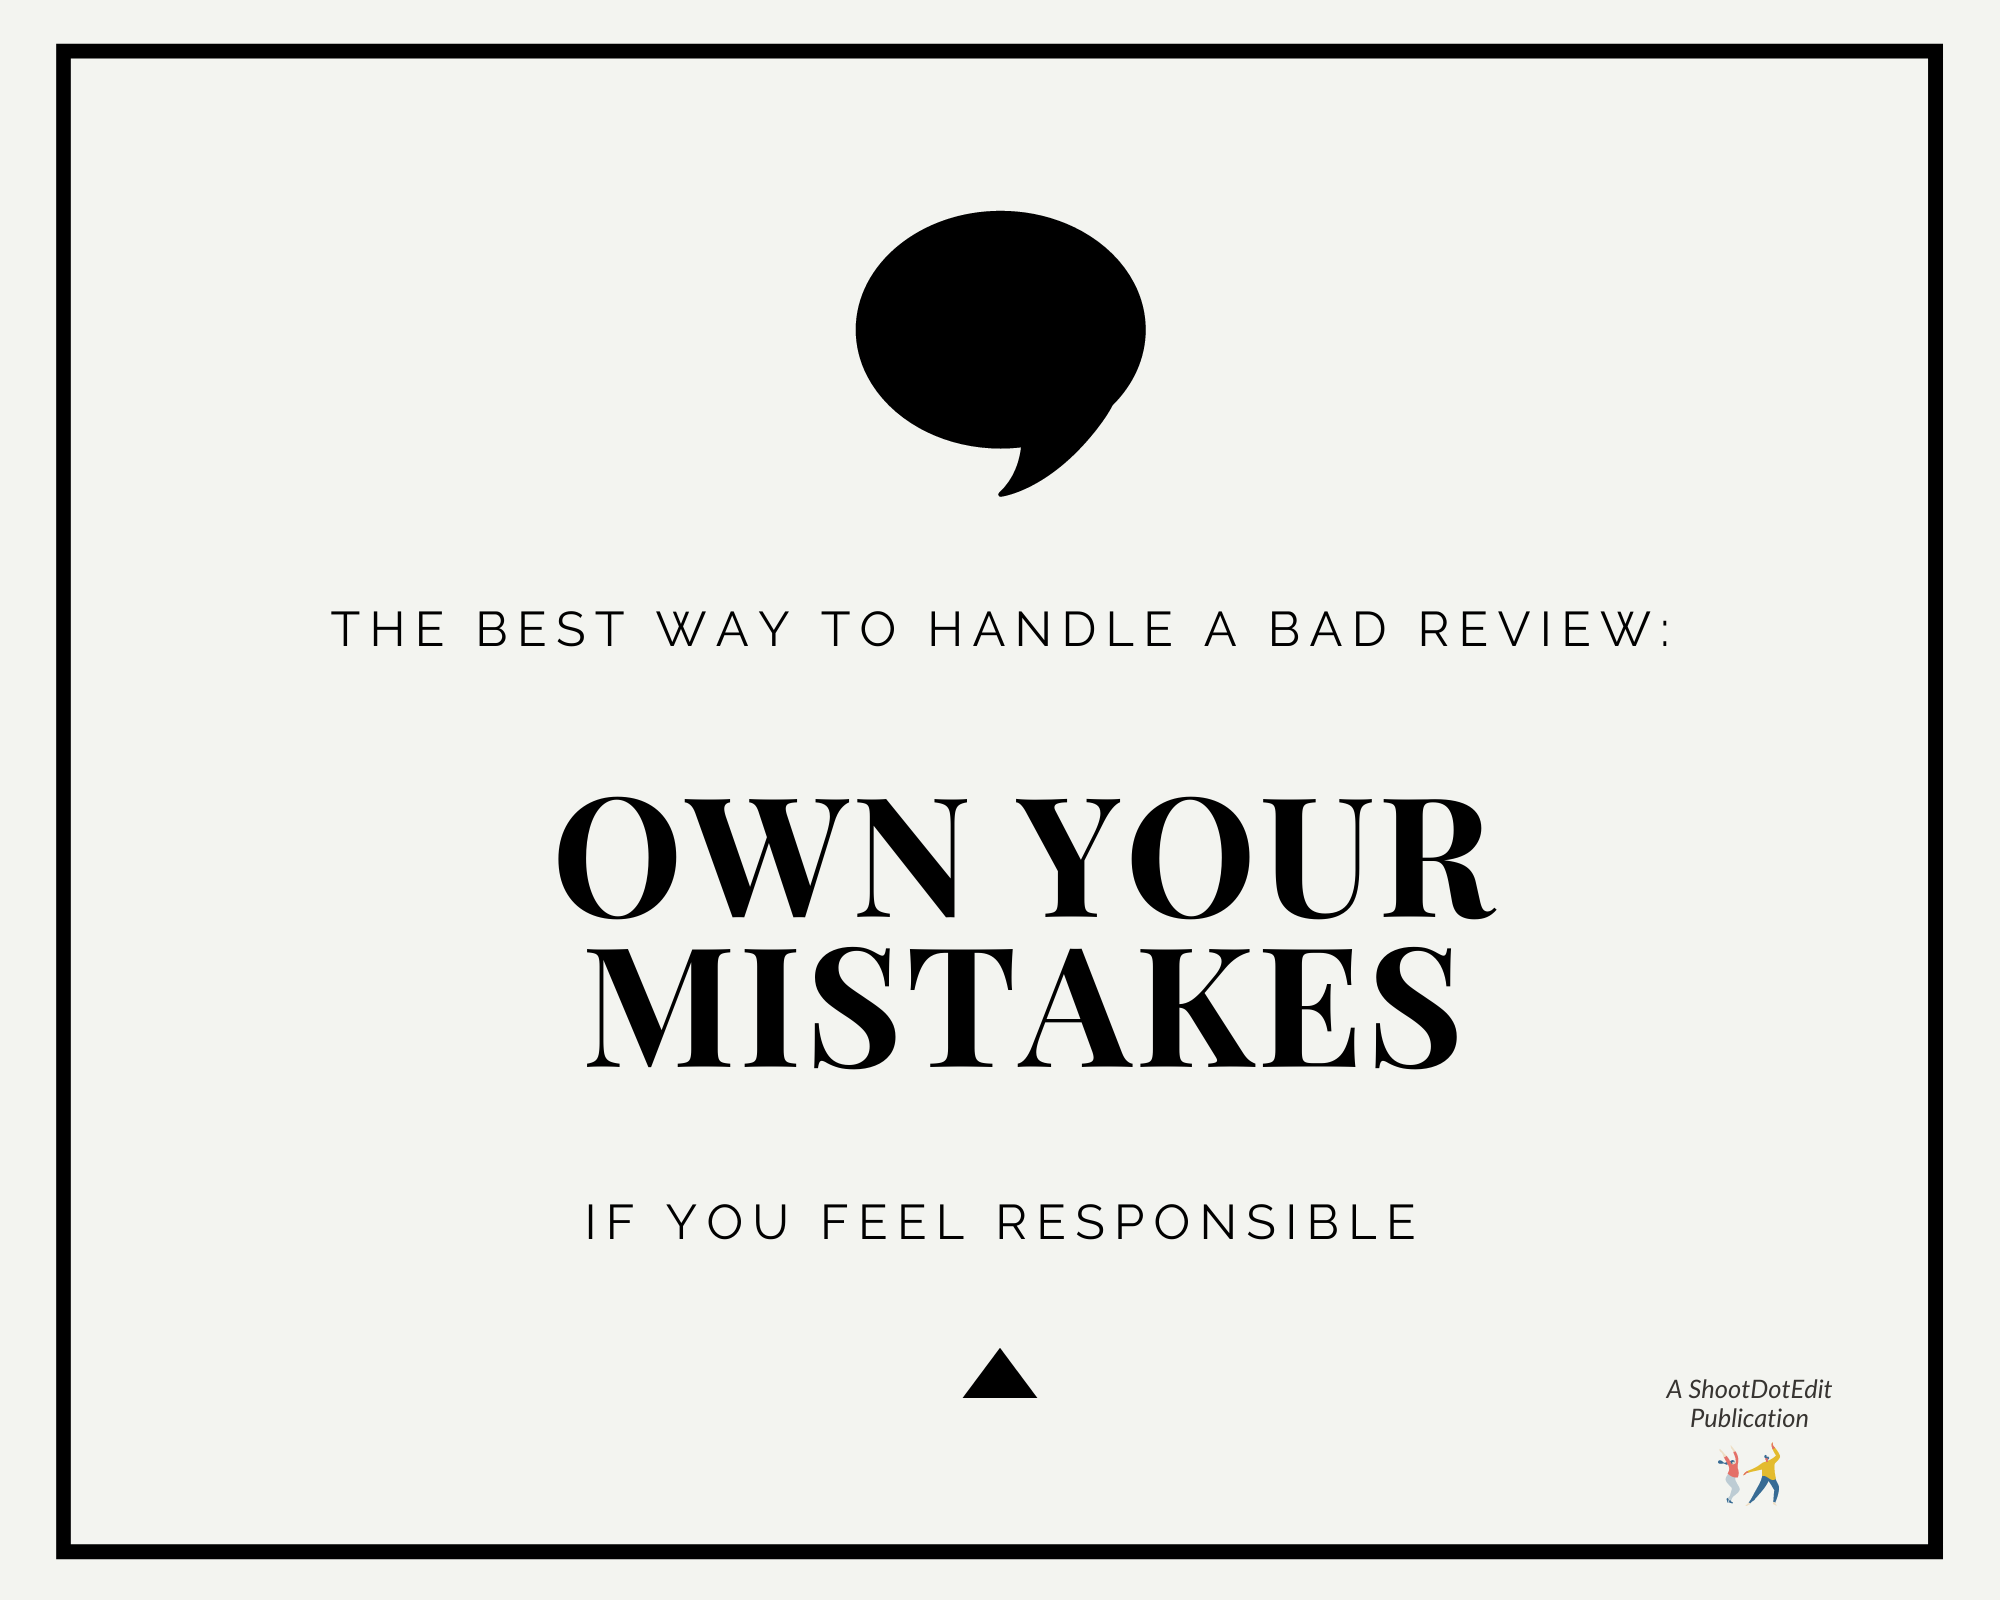 Graphic displaying - The best way to handle a bad review: Own your mistakes if you feel responsible